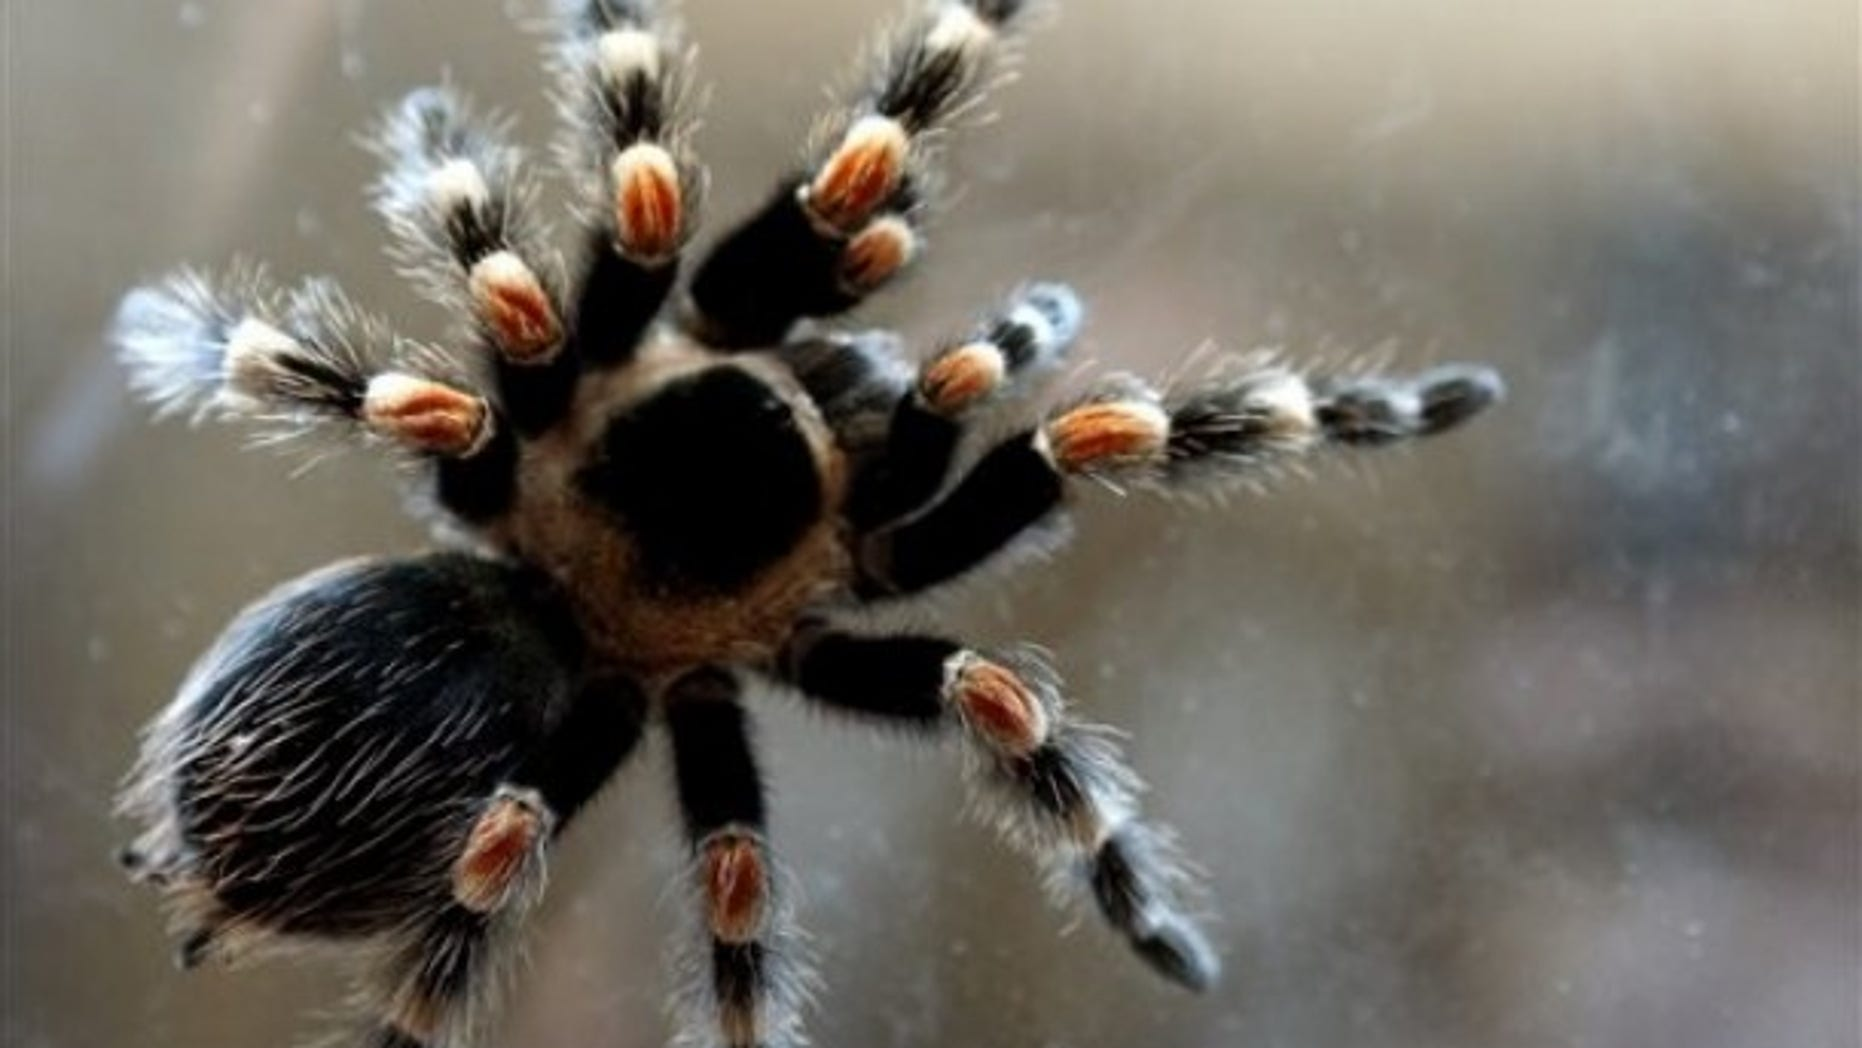 A tarantula spider (Theraphosidae) is displayed during a live exotic animal exhibition in the Bulgarian capital Sofia, Monday, April 19, 2010.(AP Photo/Petar Petrov)